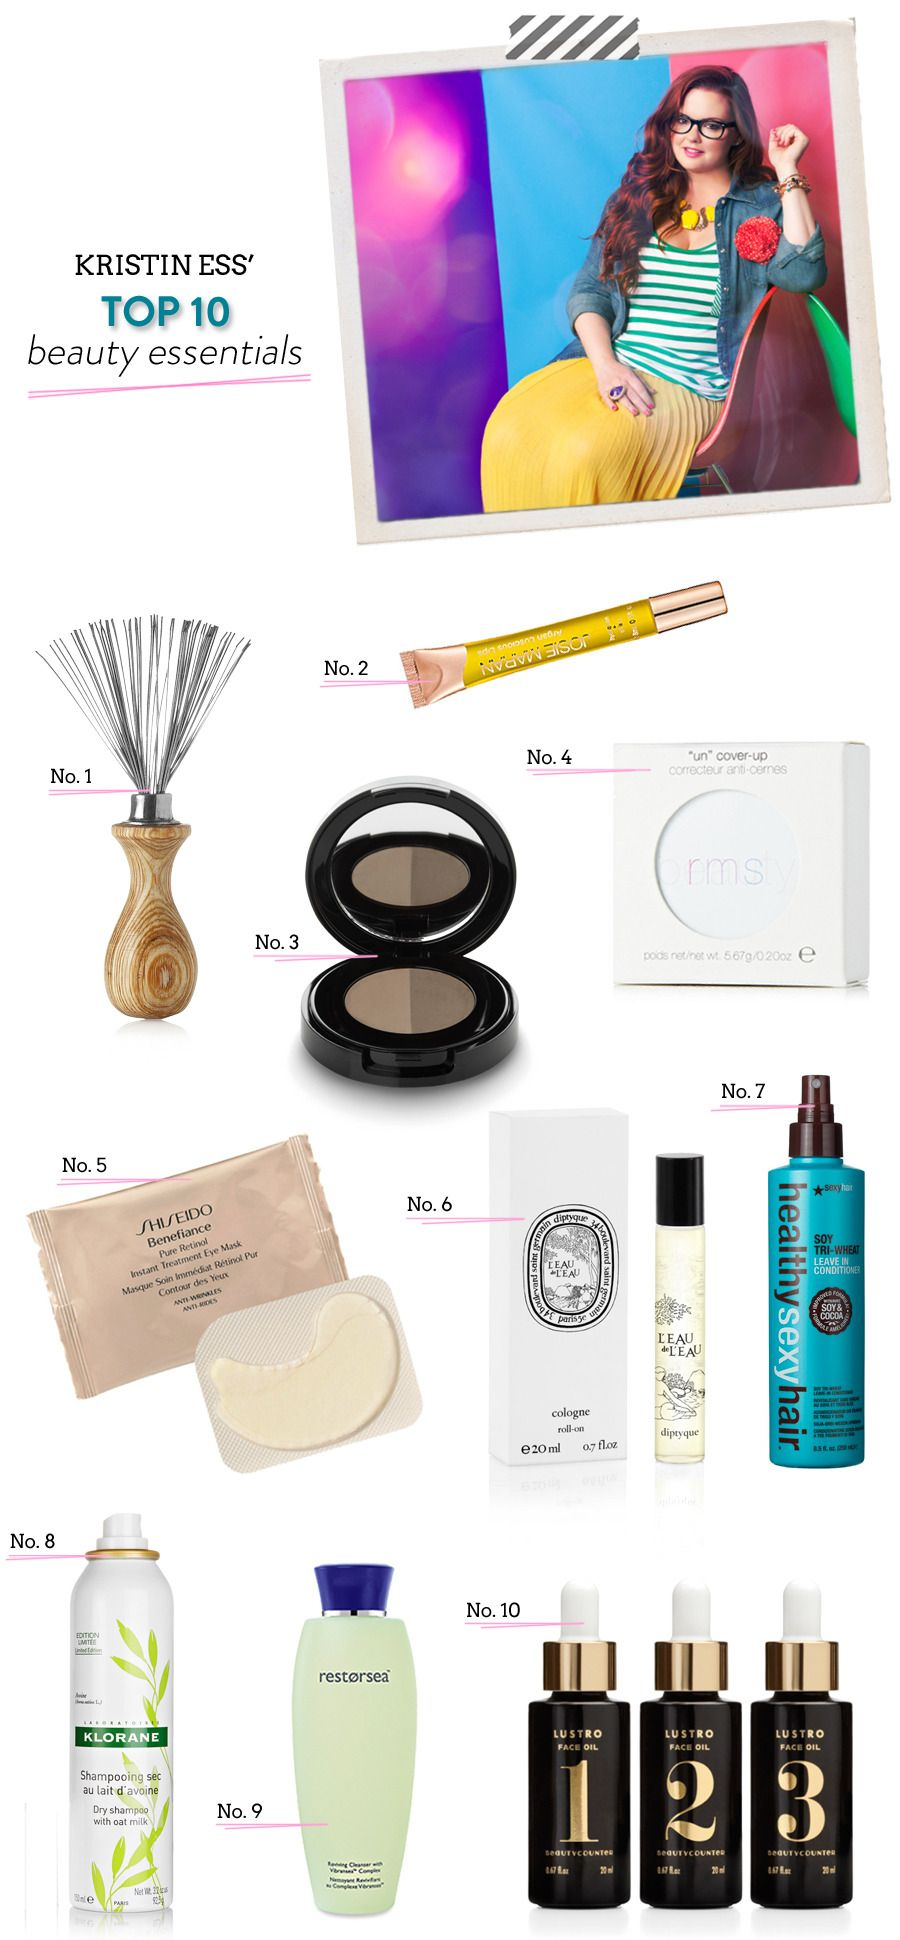 The Beauty Department & Kristin Ess' Top 10 Beauty Essentials #beautyessentials